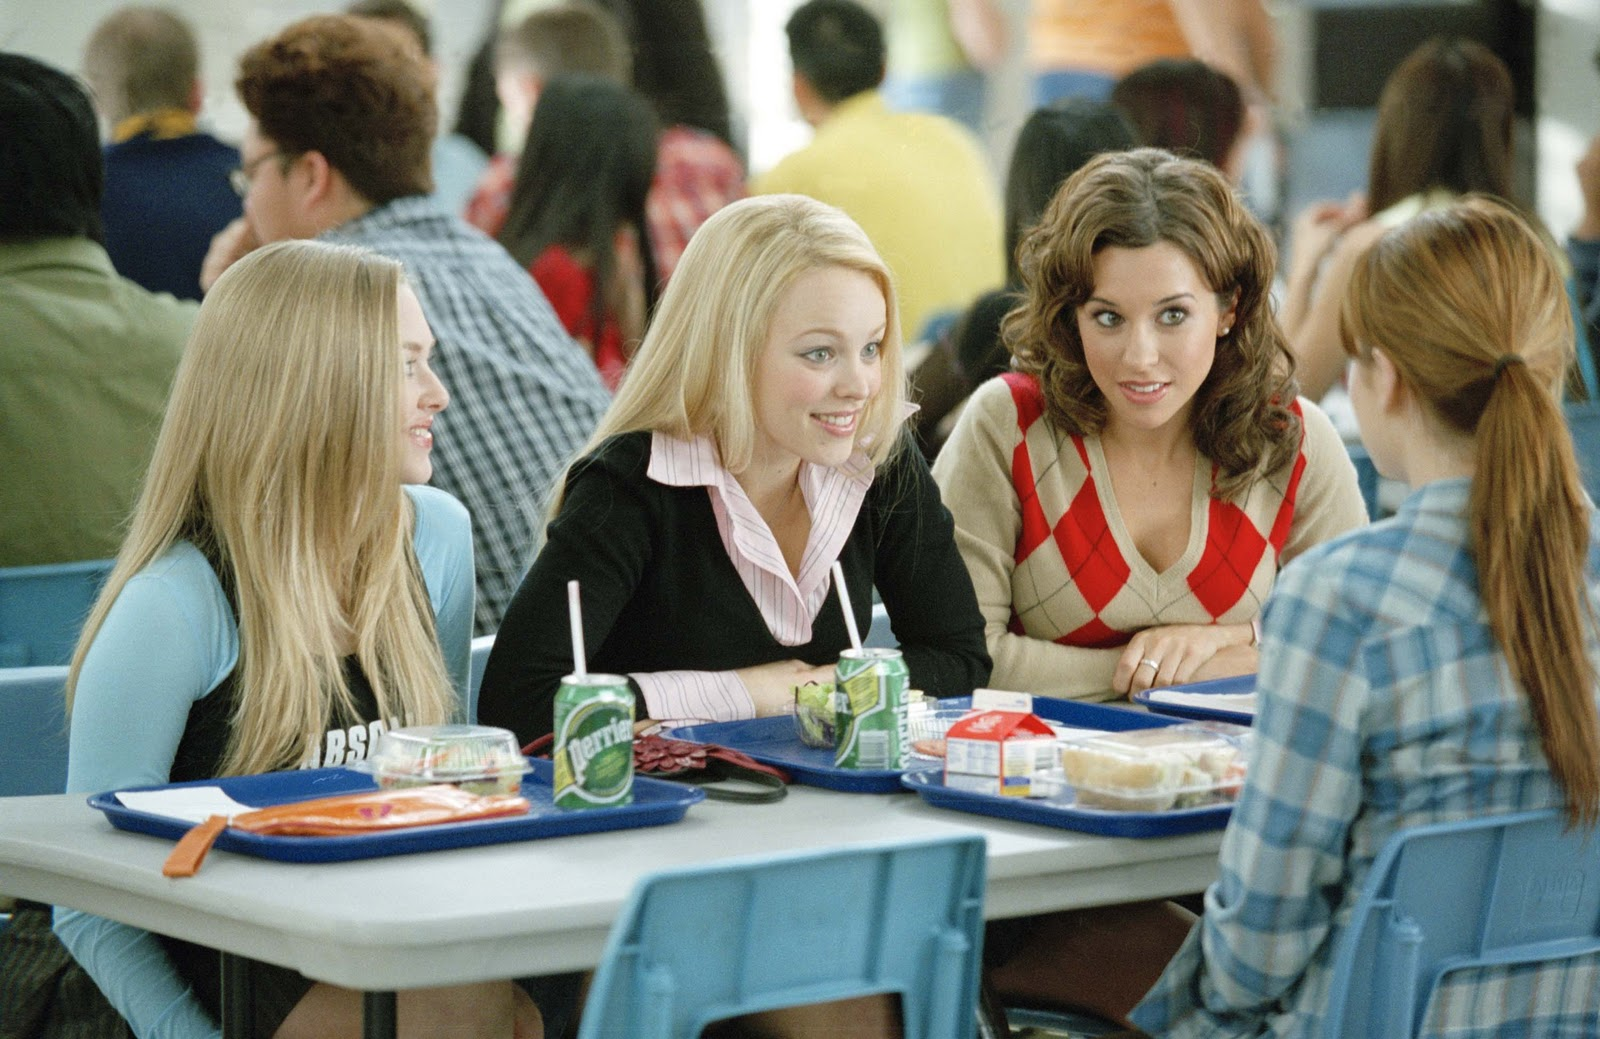 Rachel-mcadams_dot_net-meangirls-moviestills24